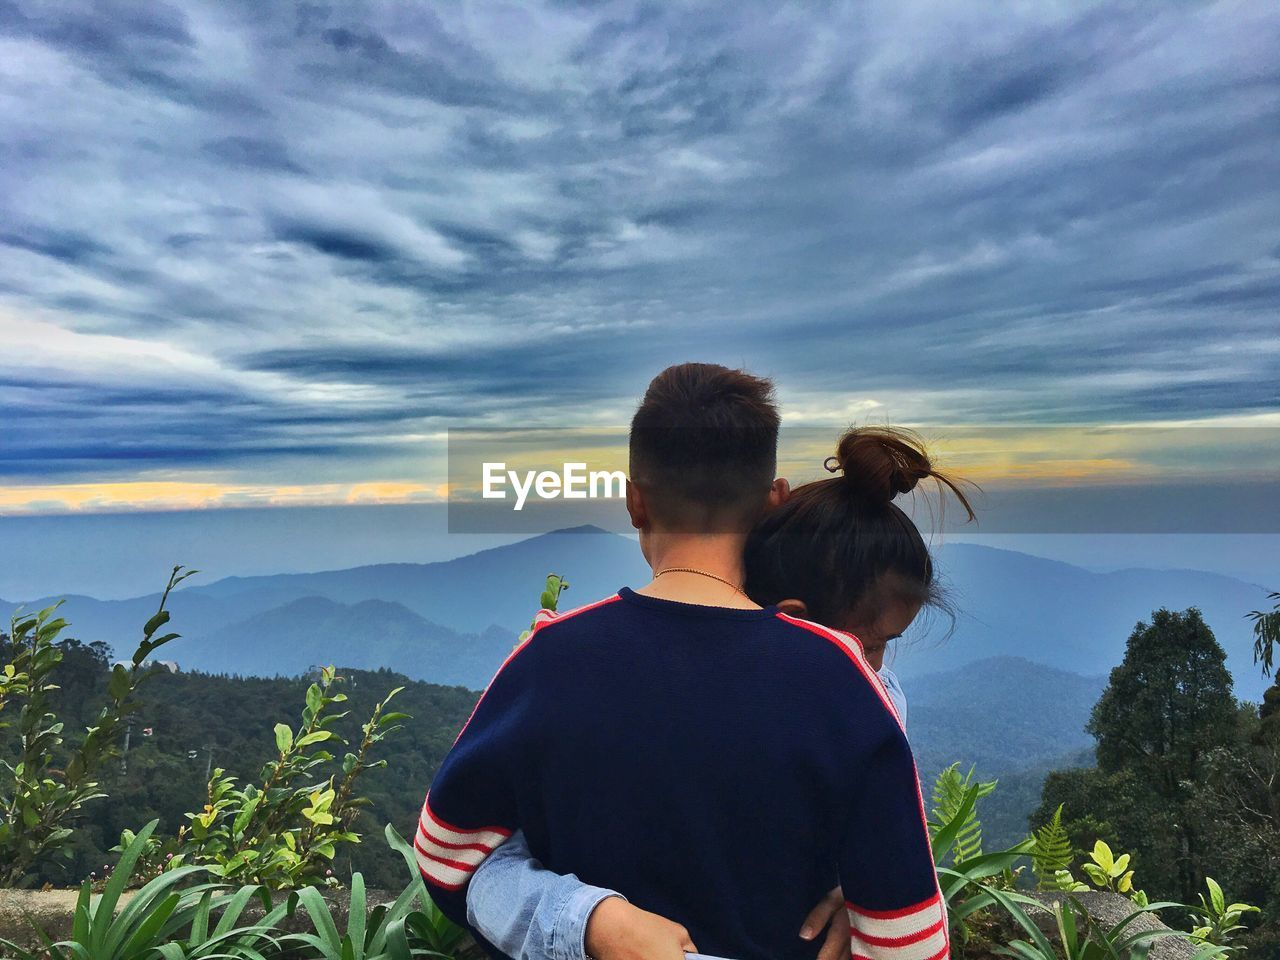 two people, rear view, real people, togetherness, sky, mountain, cloud - sky, love, nature, leisure activity, bonding, looking at view, men, lifestyles, beauty in nature, scenics, casual clothing, women, outdoors, friendship, tree, standing, day, sunset, people